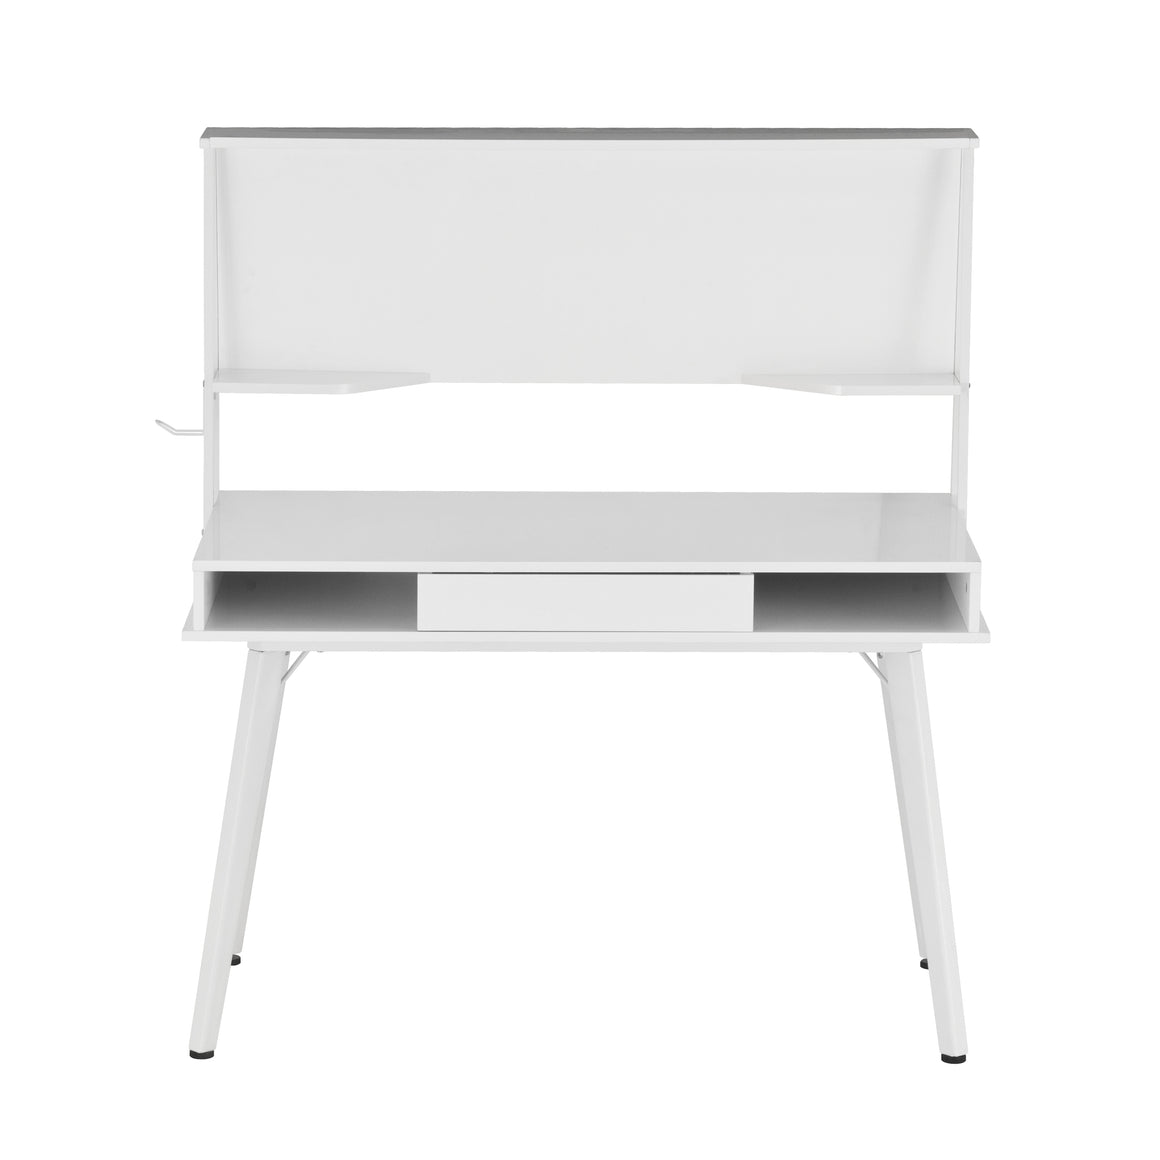 Study Computer Desk with Storage & Magnetic Dry Erase White Board